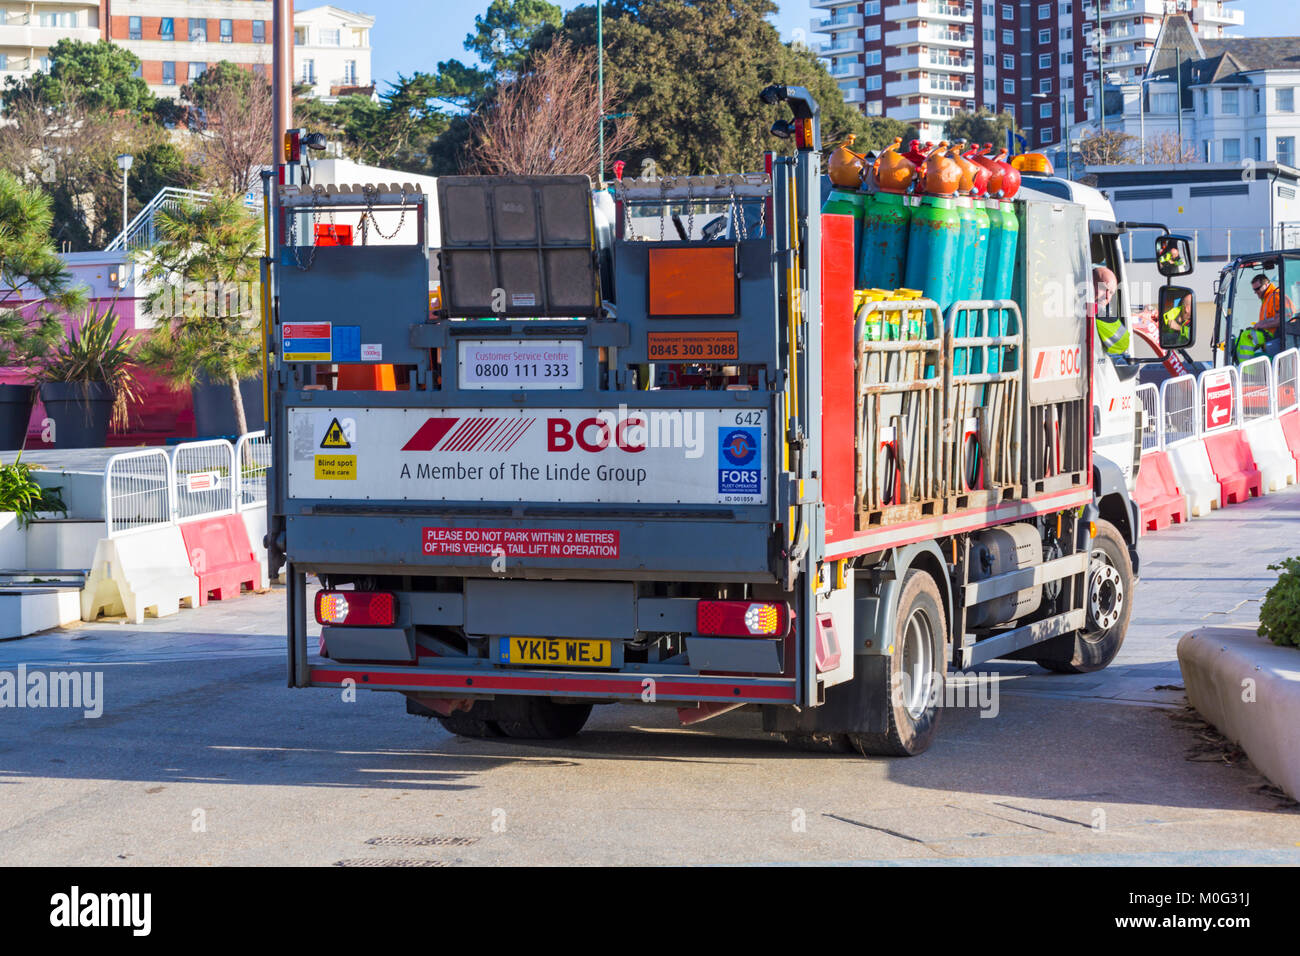 Renovations and resurfacing work at Pier Approach, Bournemouth, Dorset UK in January - vehicle with gas cylinders - Stock Image